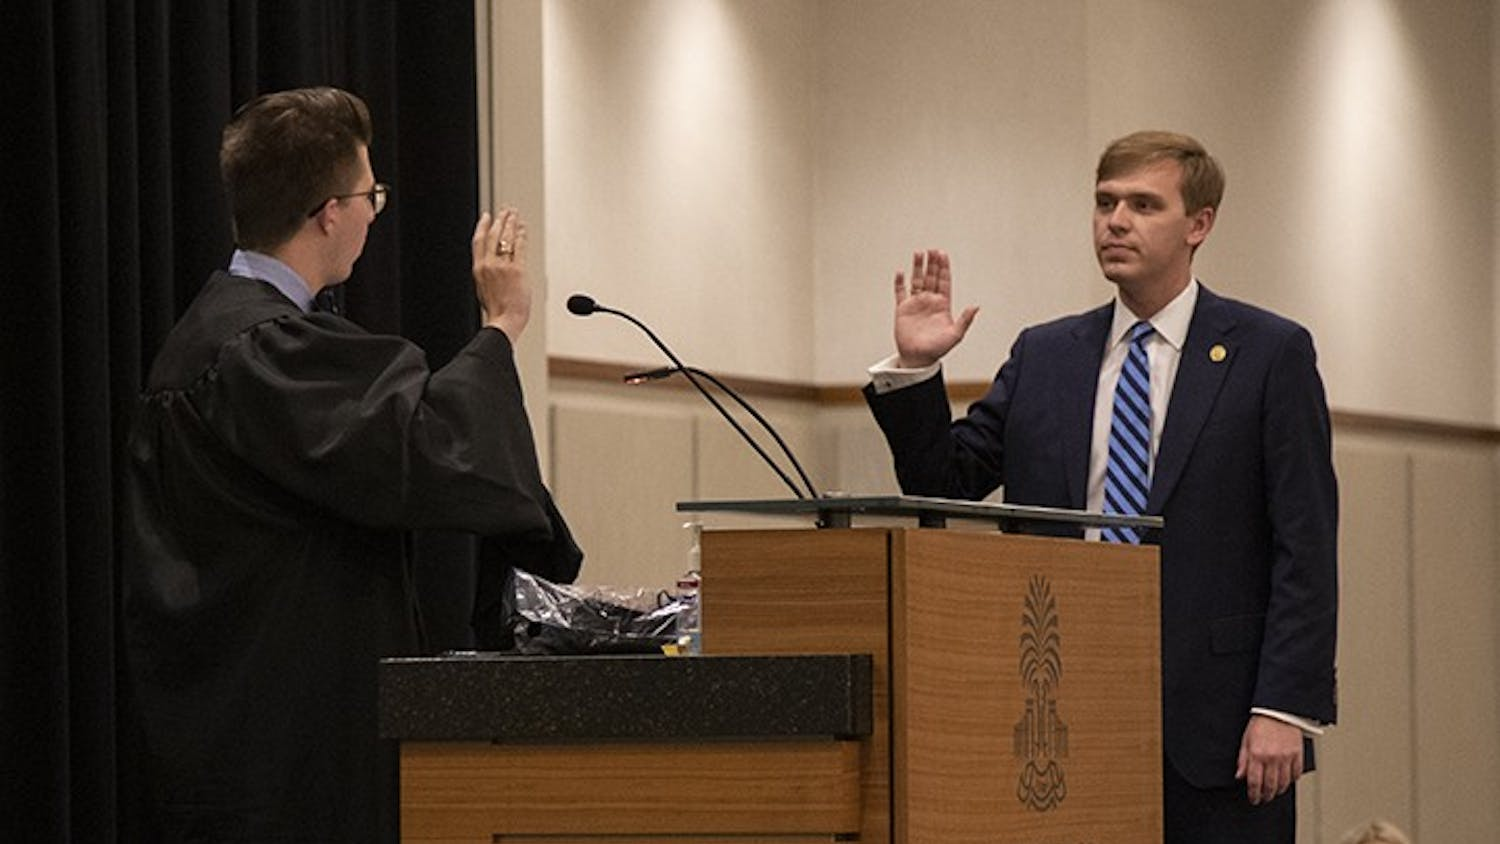 New Student Body President Alex Harrell being sworn into his position. This was immediately followed with his inauguration speech, where he thanks those who played a part in his success.